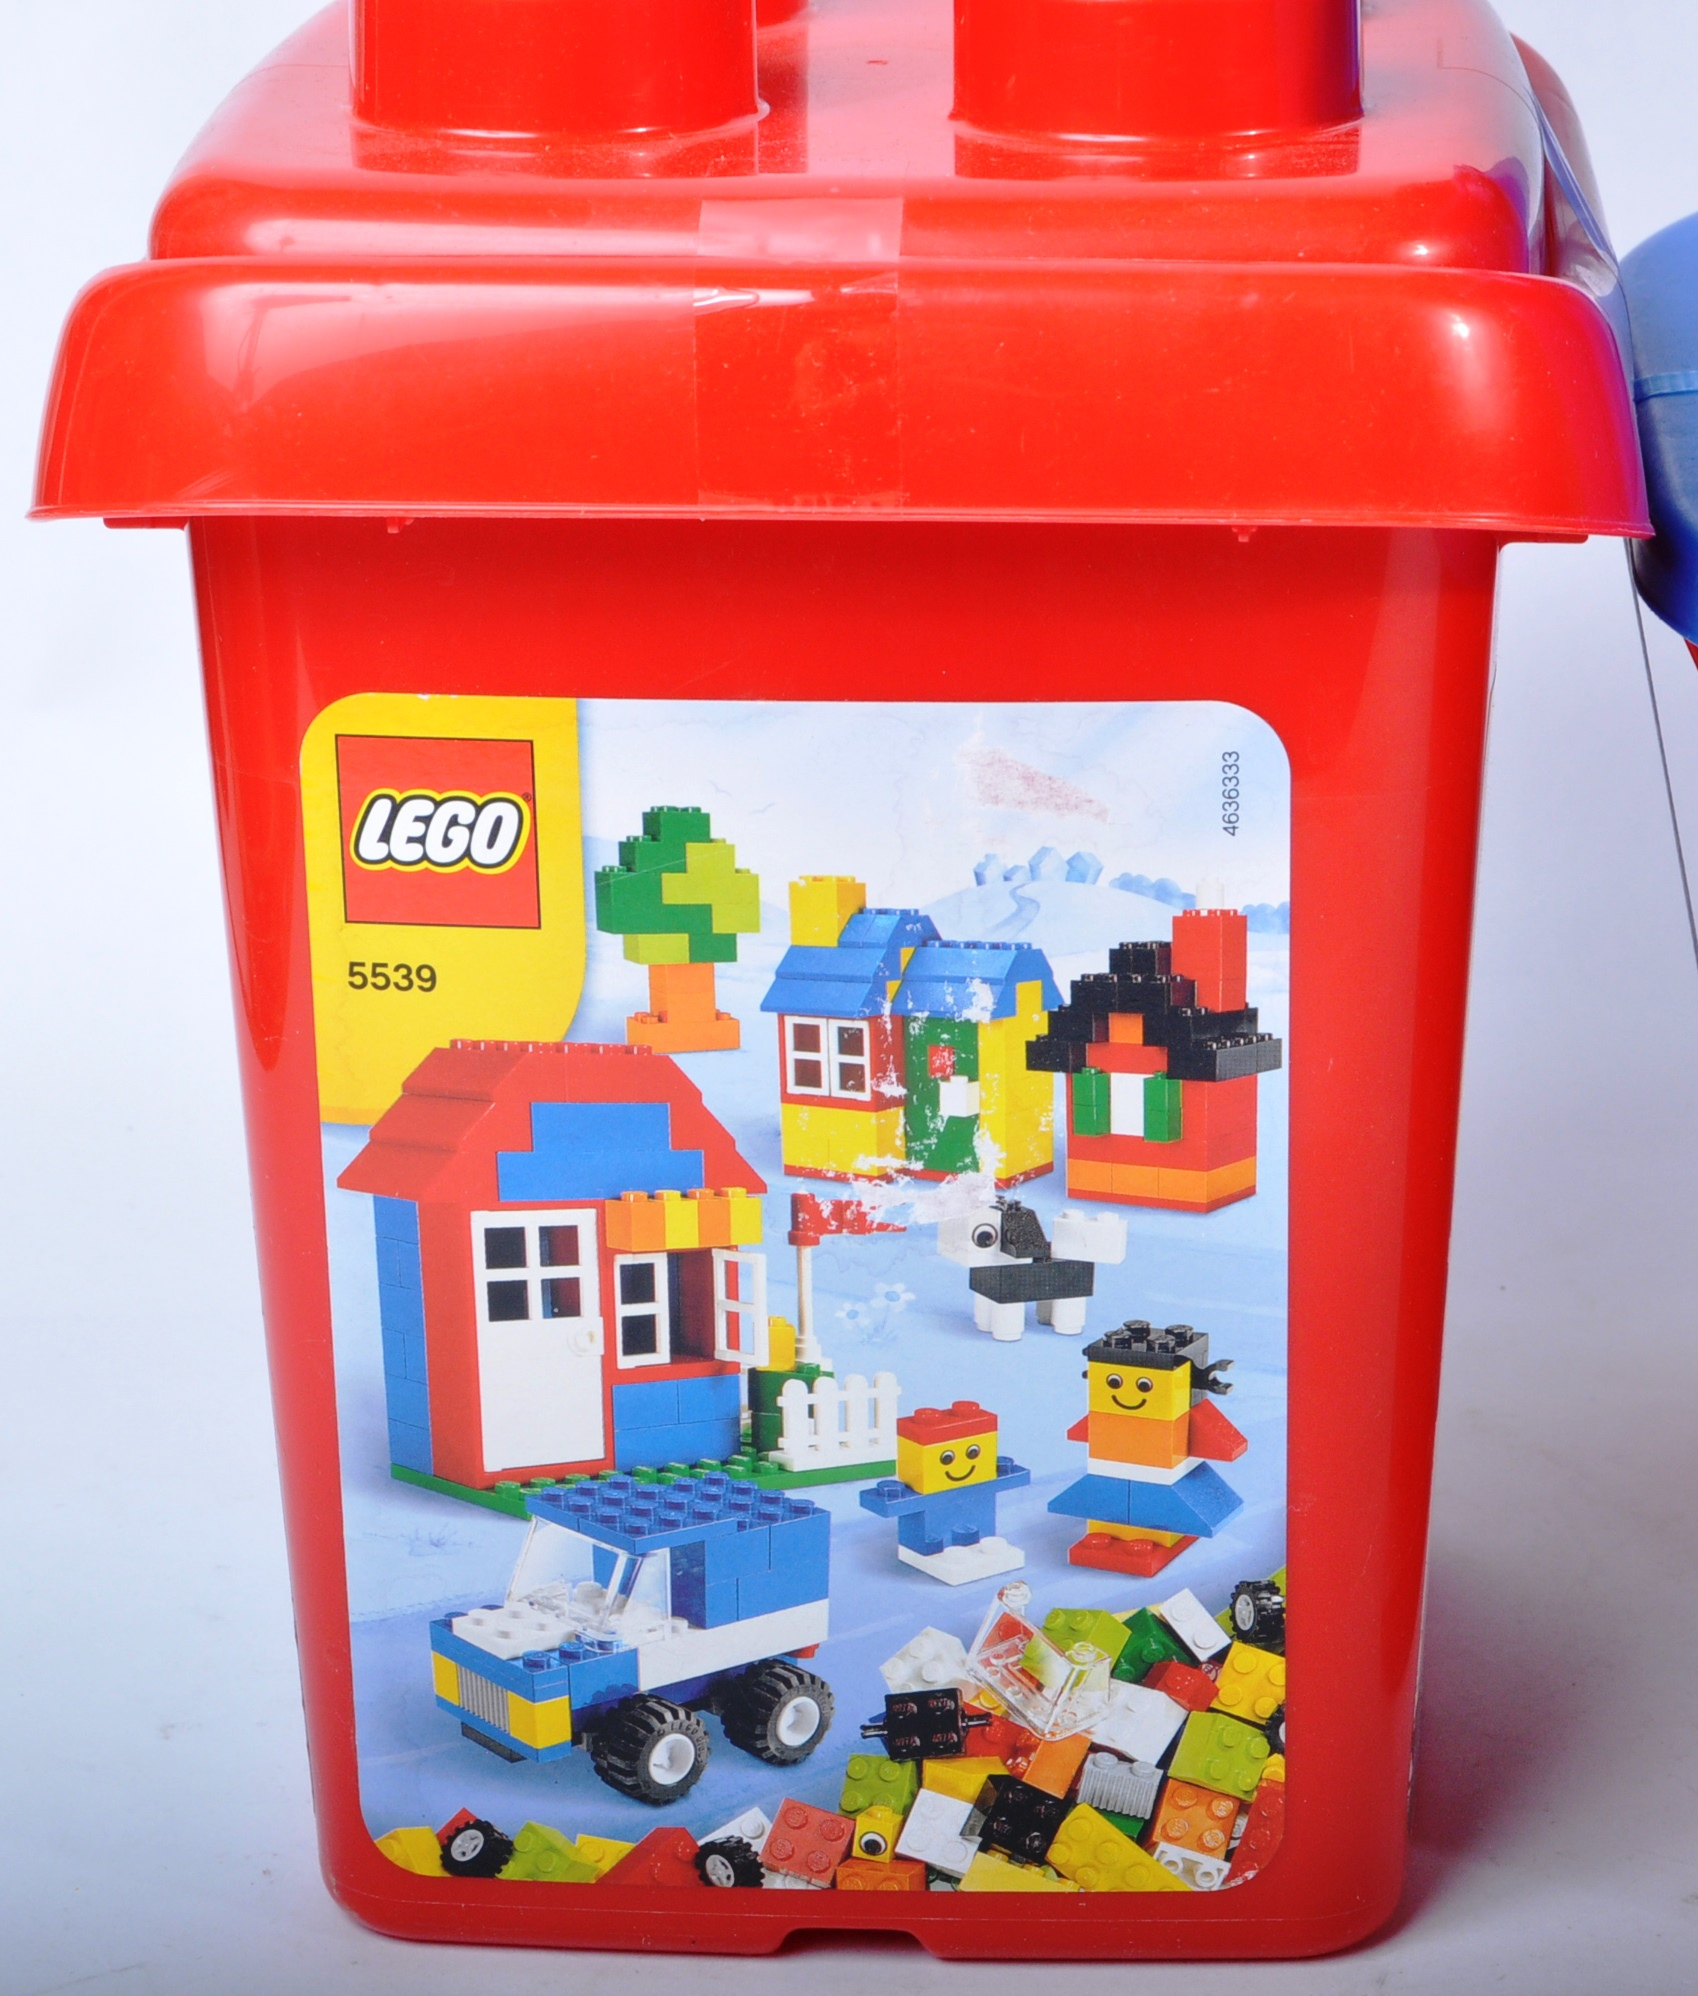 COLLECTION OF ASSORTED LEGO CREATOR BUILDING BUCKET SETS - Image 2 of 6